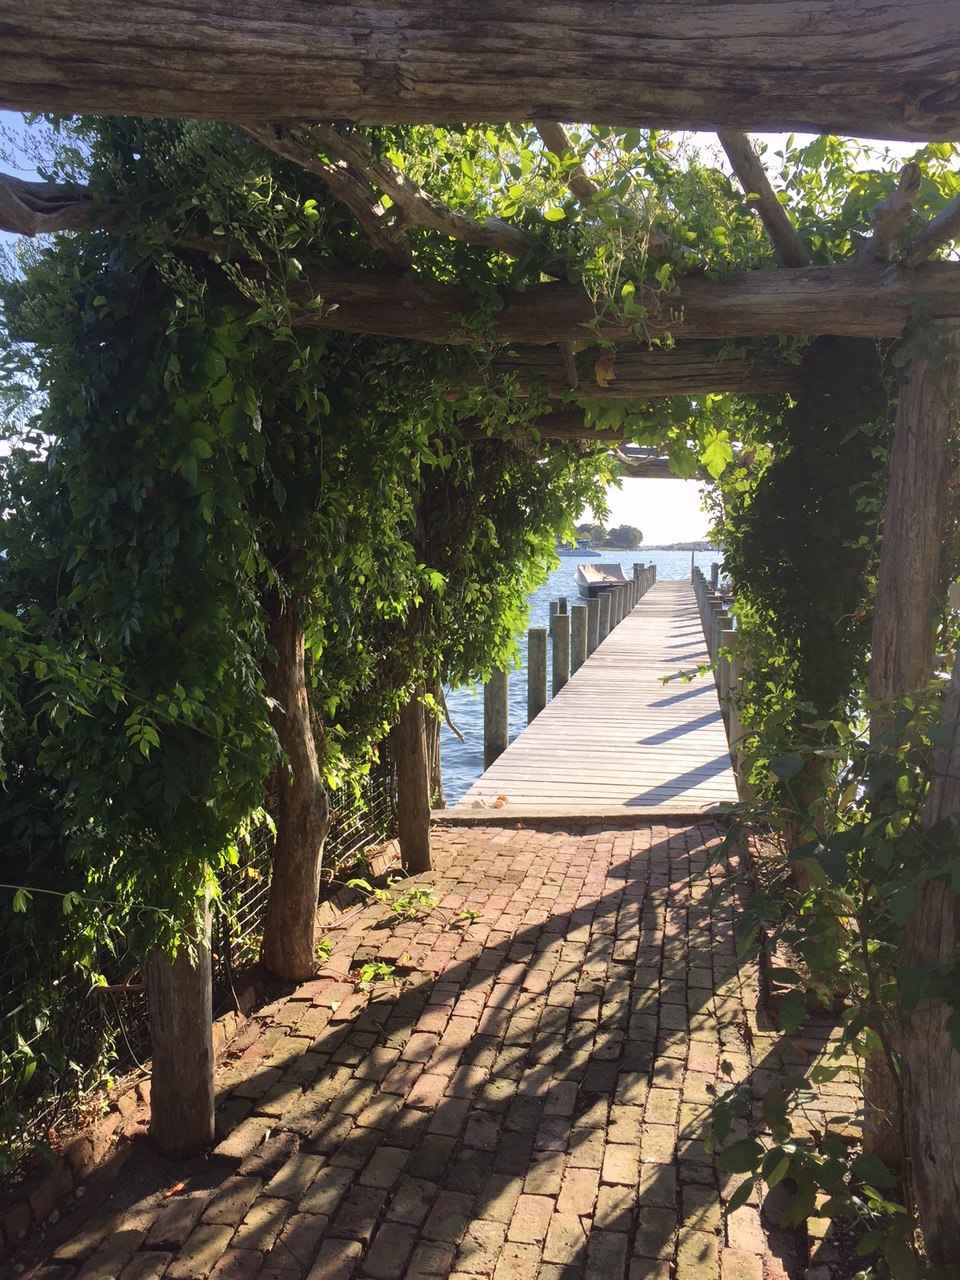 Once through the gate, the long view out the dock to the boat. The arbor is an extension of the main axis to the dock and also is a sculptural element in the garden, now partially covered with the flowing Trumpet vine, and also Akebia (or Chocolate vine) which both provides some shade and also softens the structure.